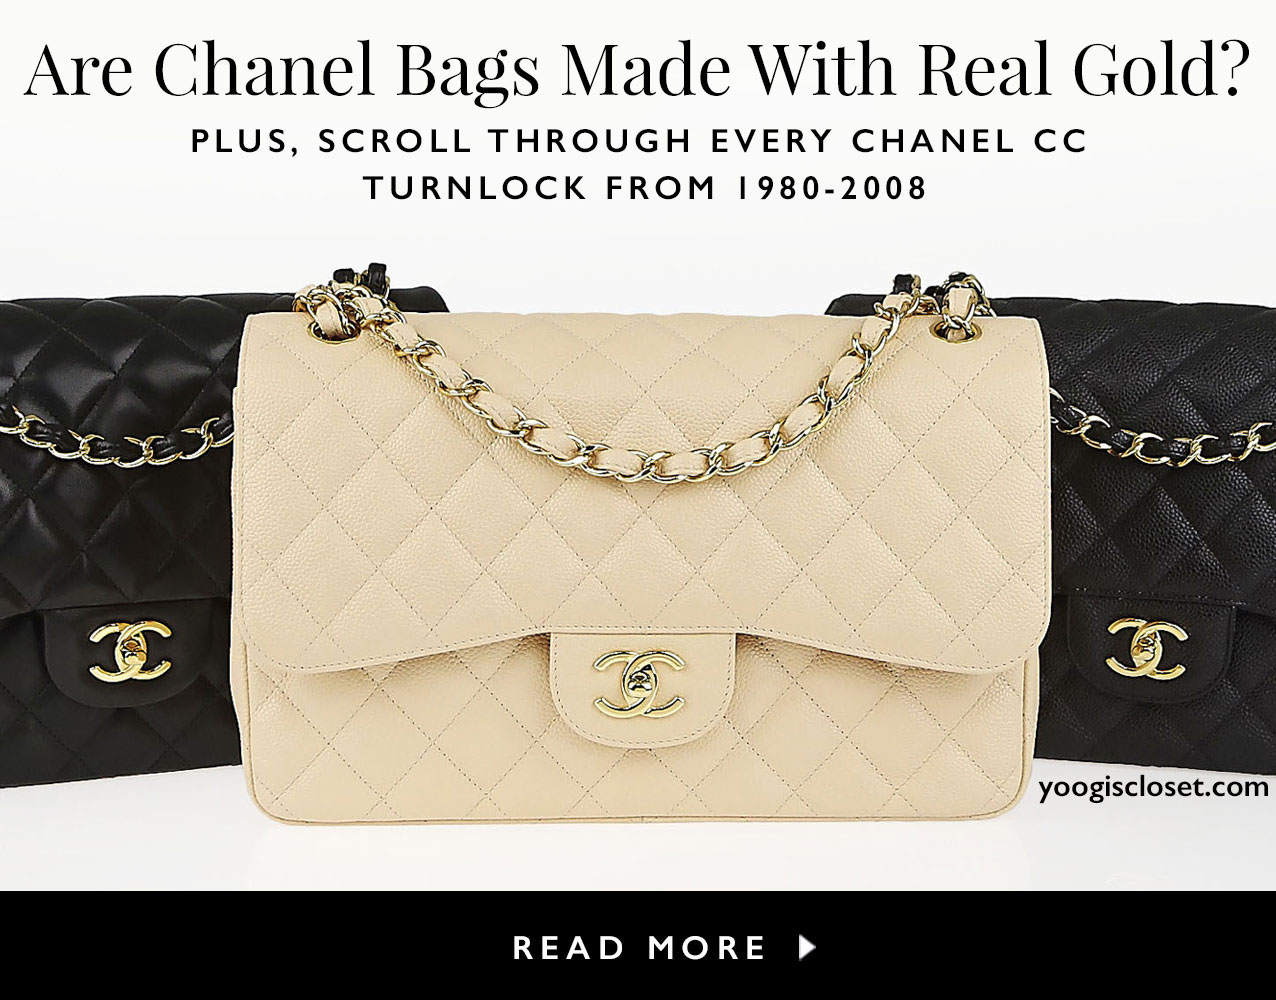 Are Authentic Chanel Bags Made With Real Good? Find Out on YoogisCloset.com